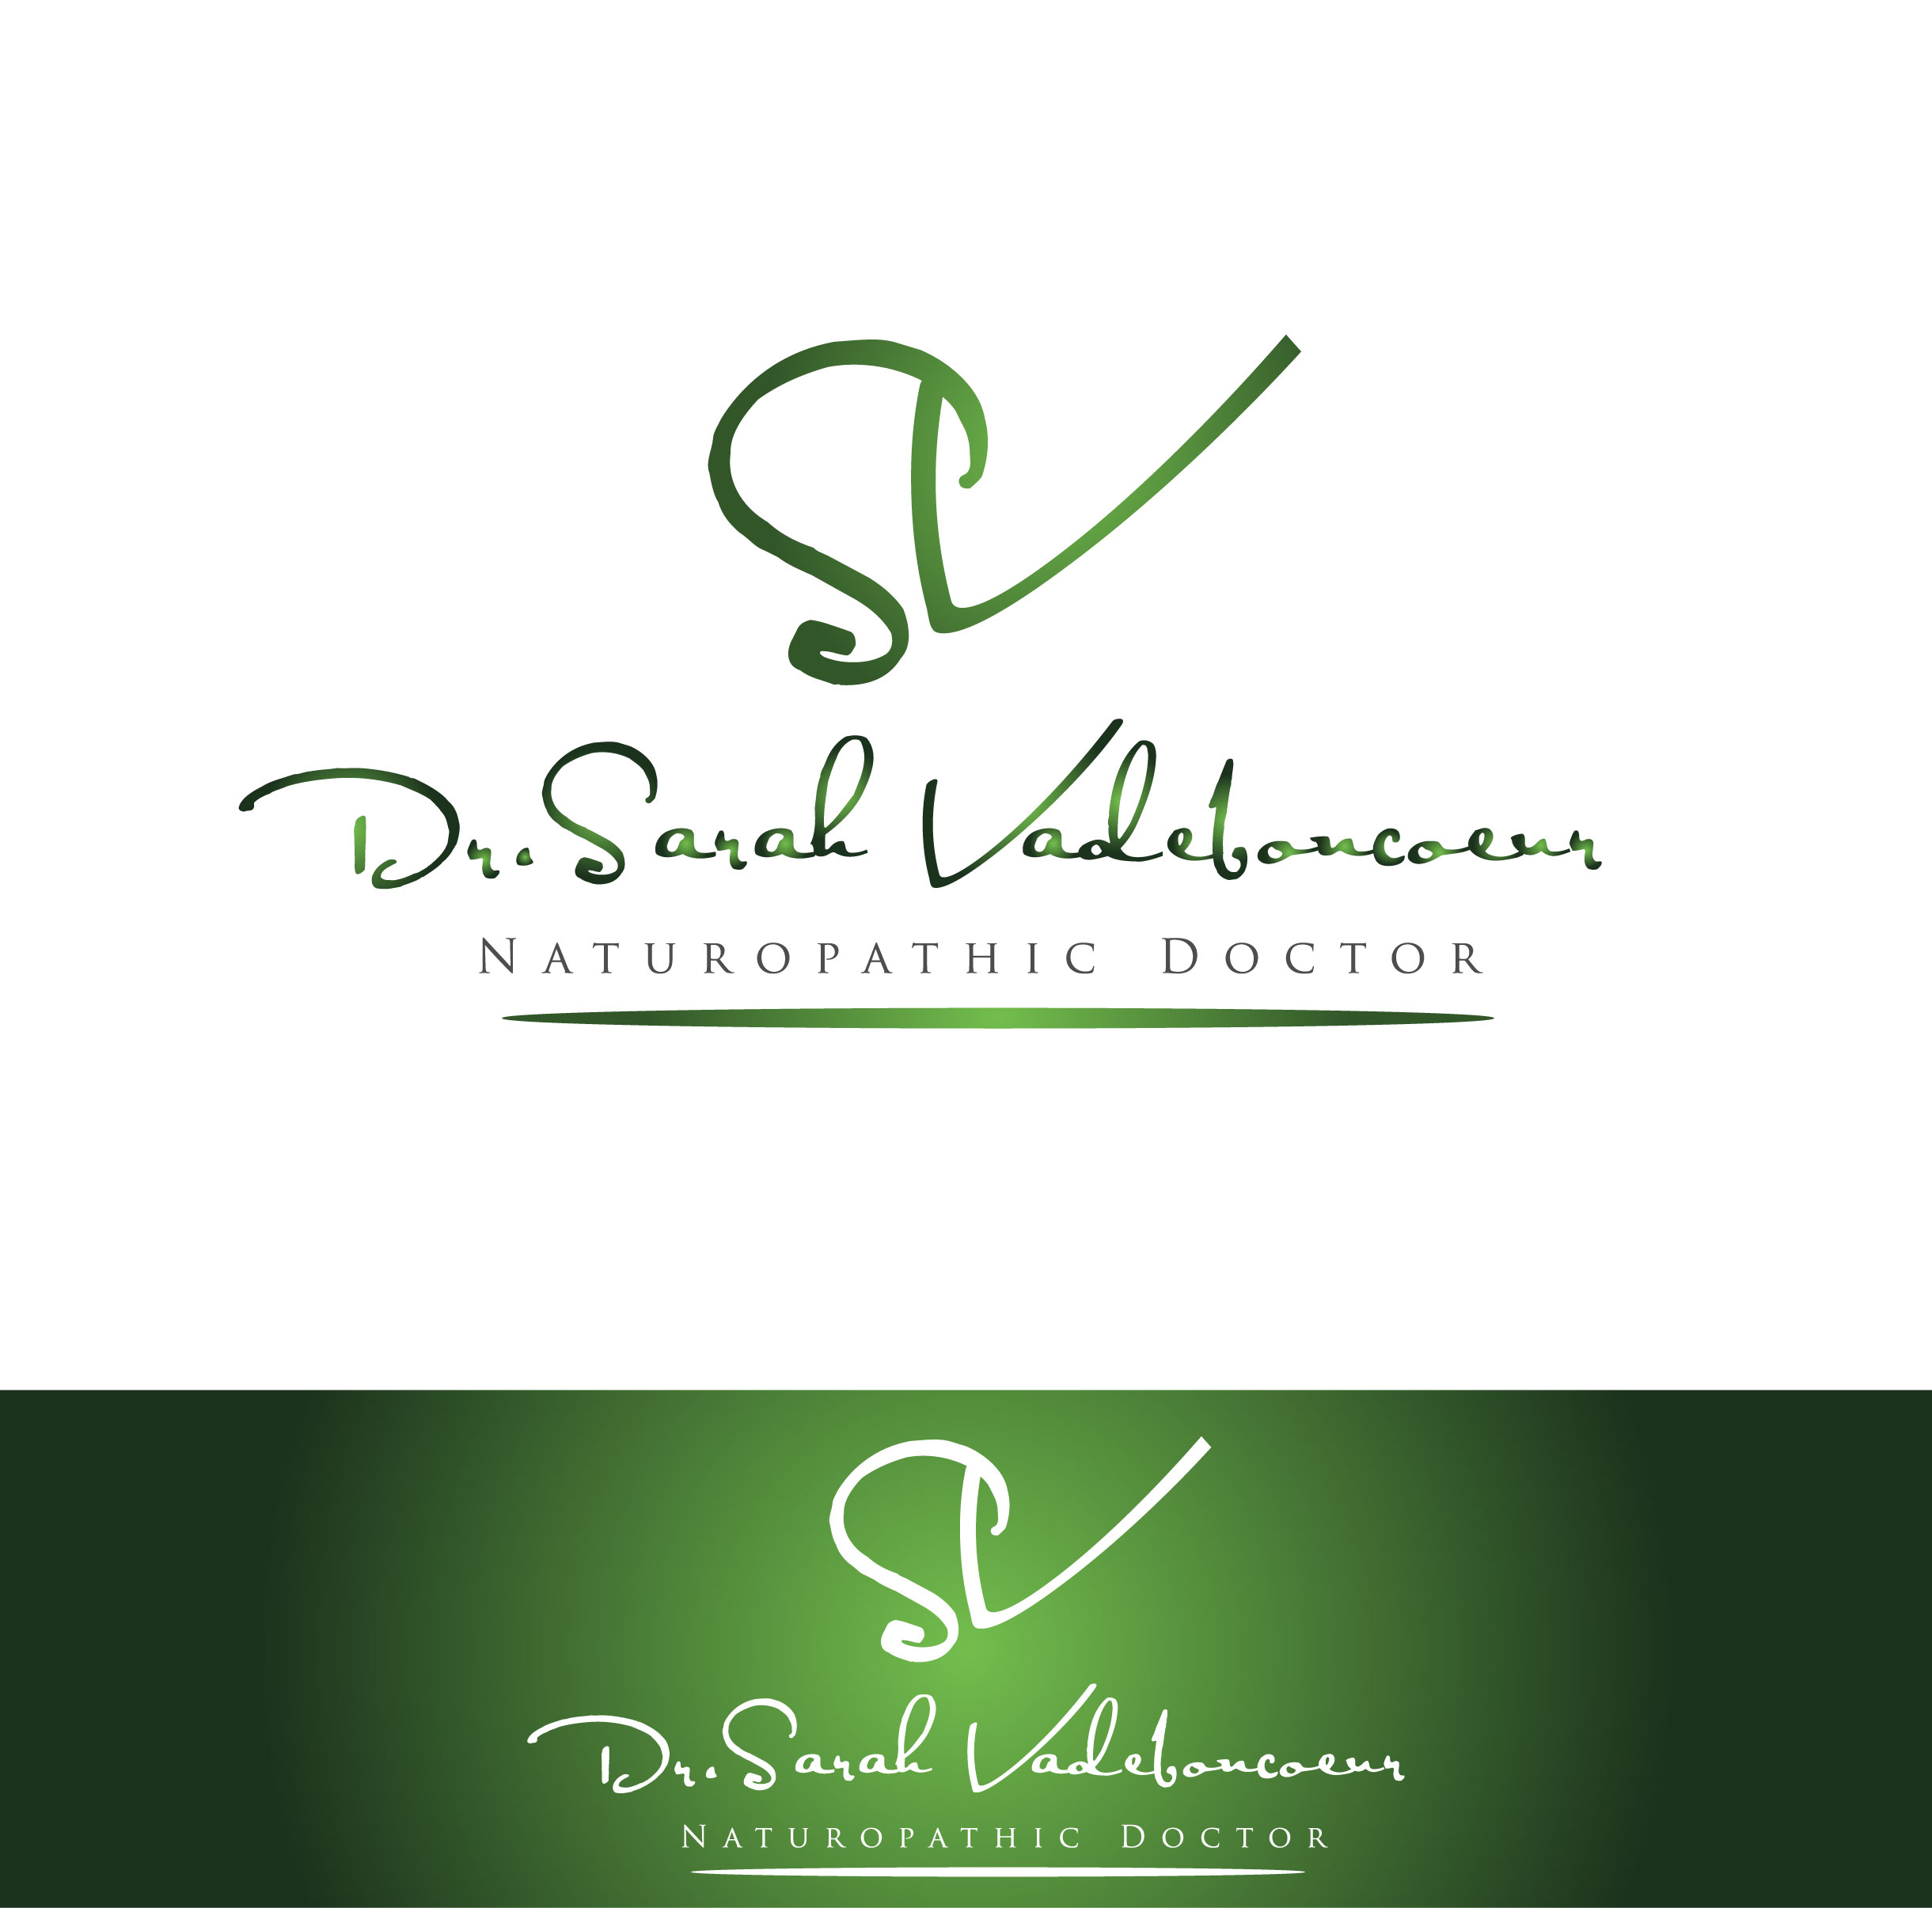 Logo Design by Darina Dimitrova - Entry No. 13 in the Logo Design Contest New Logo Design for Dr. Sarah Vadeboncoeur, Naturopathic Doctor.